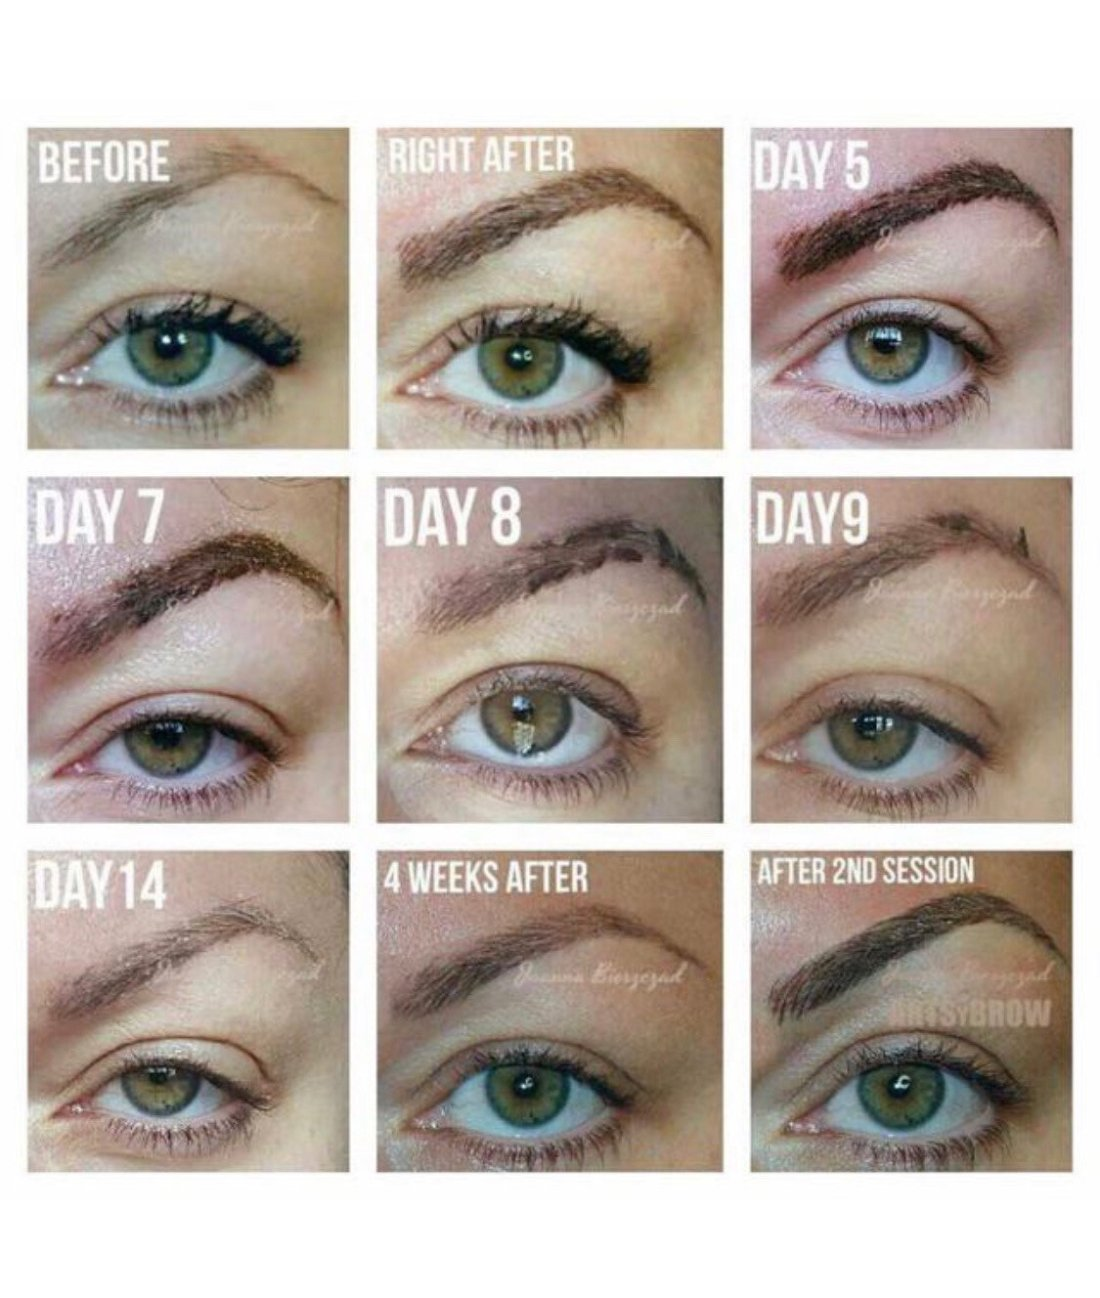 What to expect after a microblading session